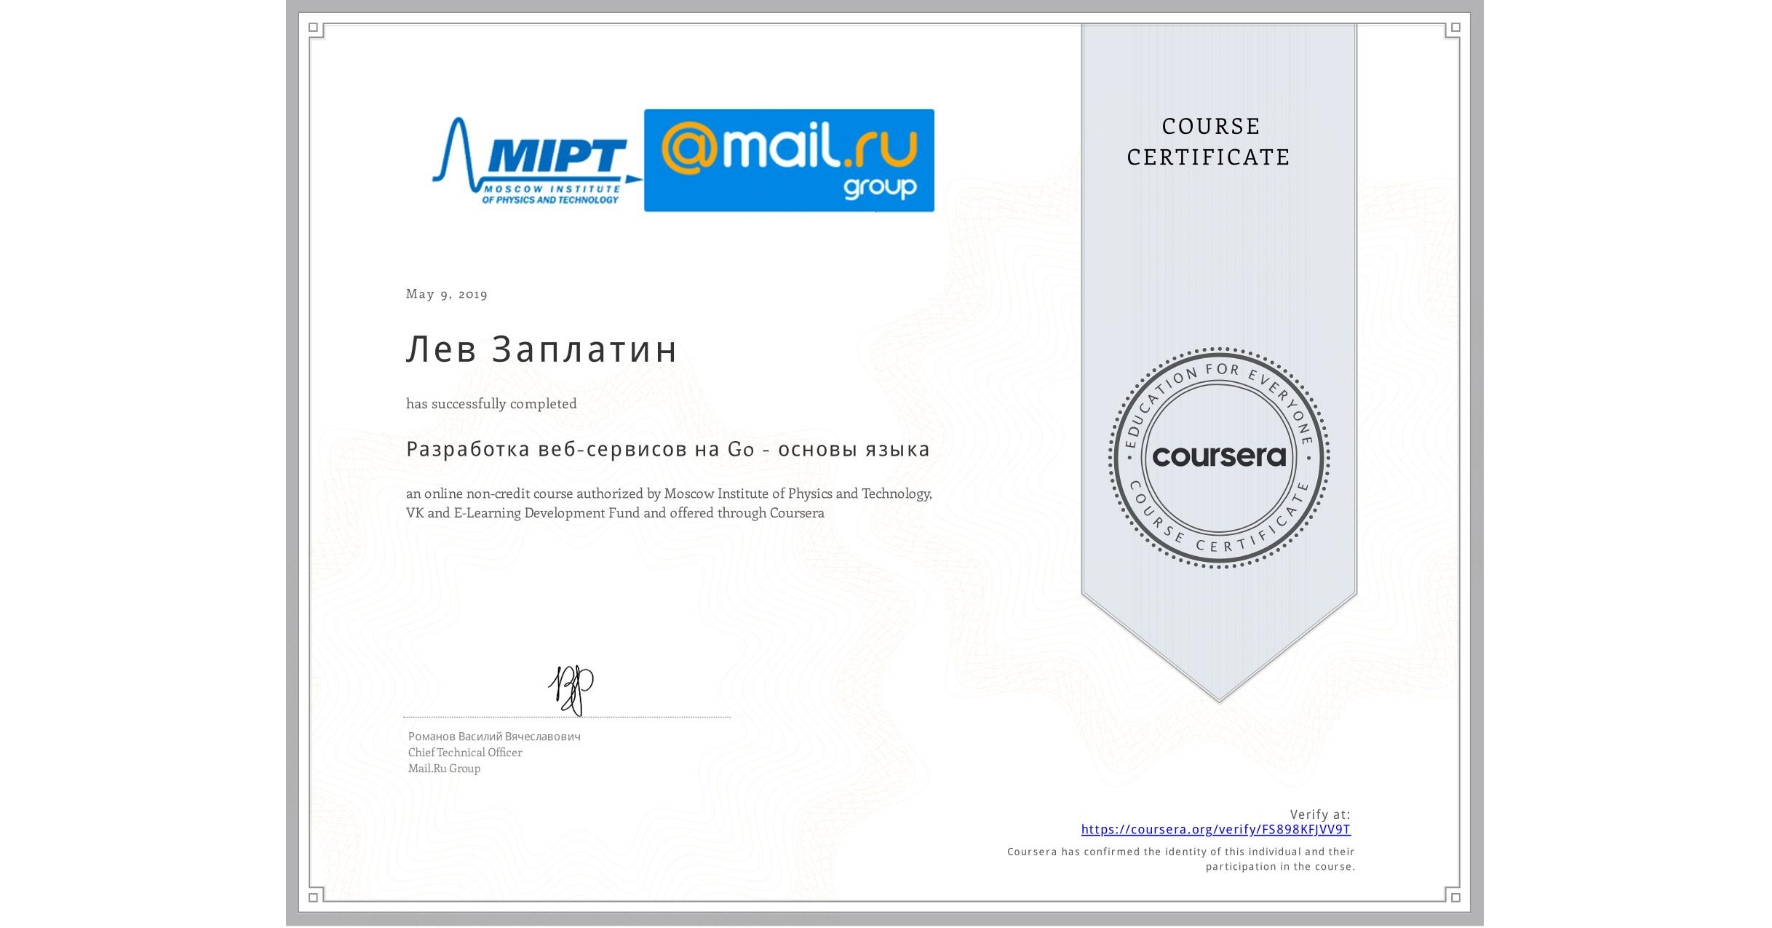 View certificate for Лев Заплатин, Разработка веб-сервисов на Go - основы языка, an online non-credit course authorized by Moscow Institute of Physics and Technology, Mail.Ru Group & ФРОО and offered through Coursera